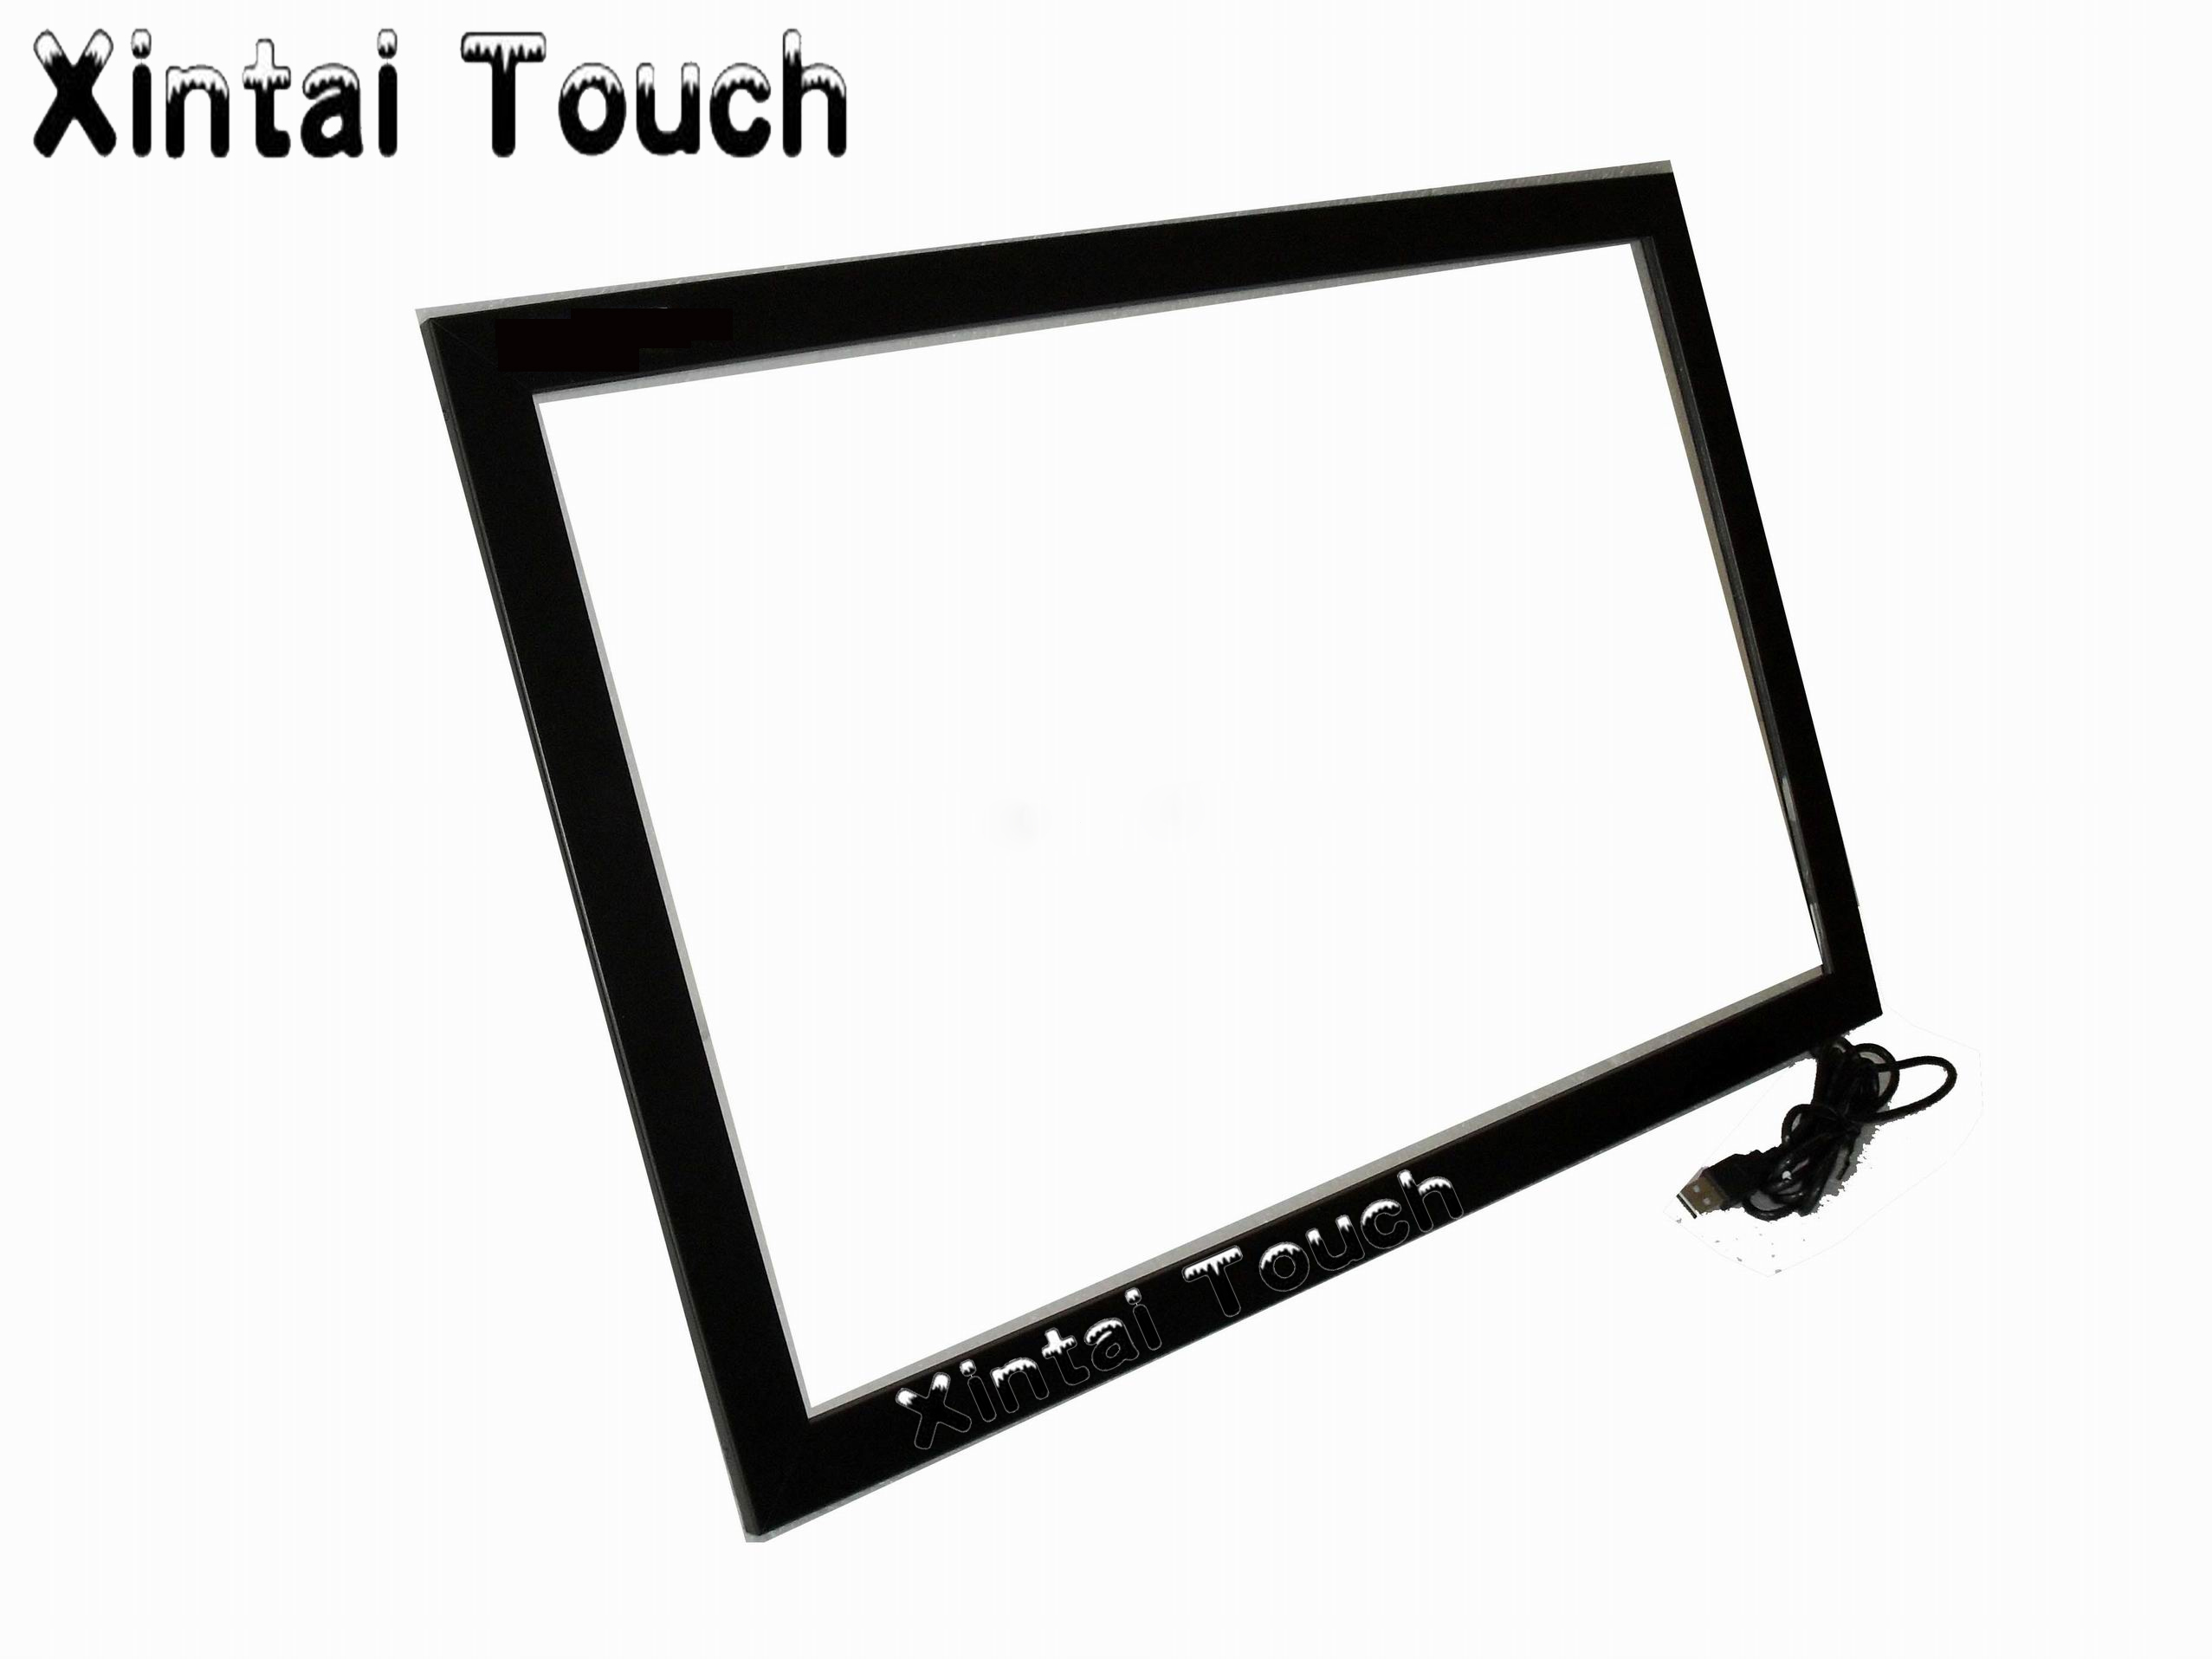 Free Shipping! 82 inch infrared Multi touch screen,10 touch points IR touch frame for smart tv,flat touch screen panel